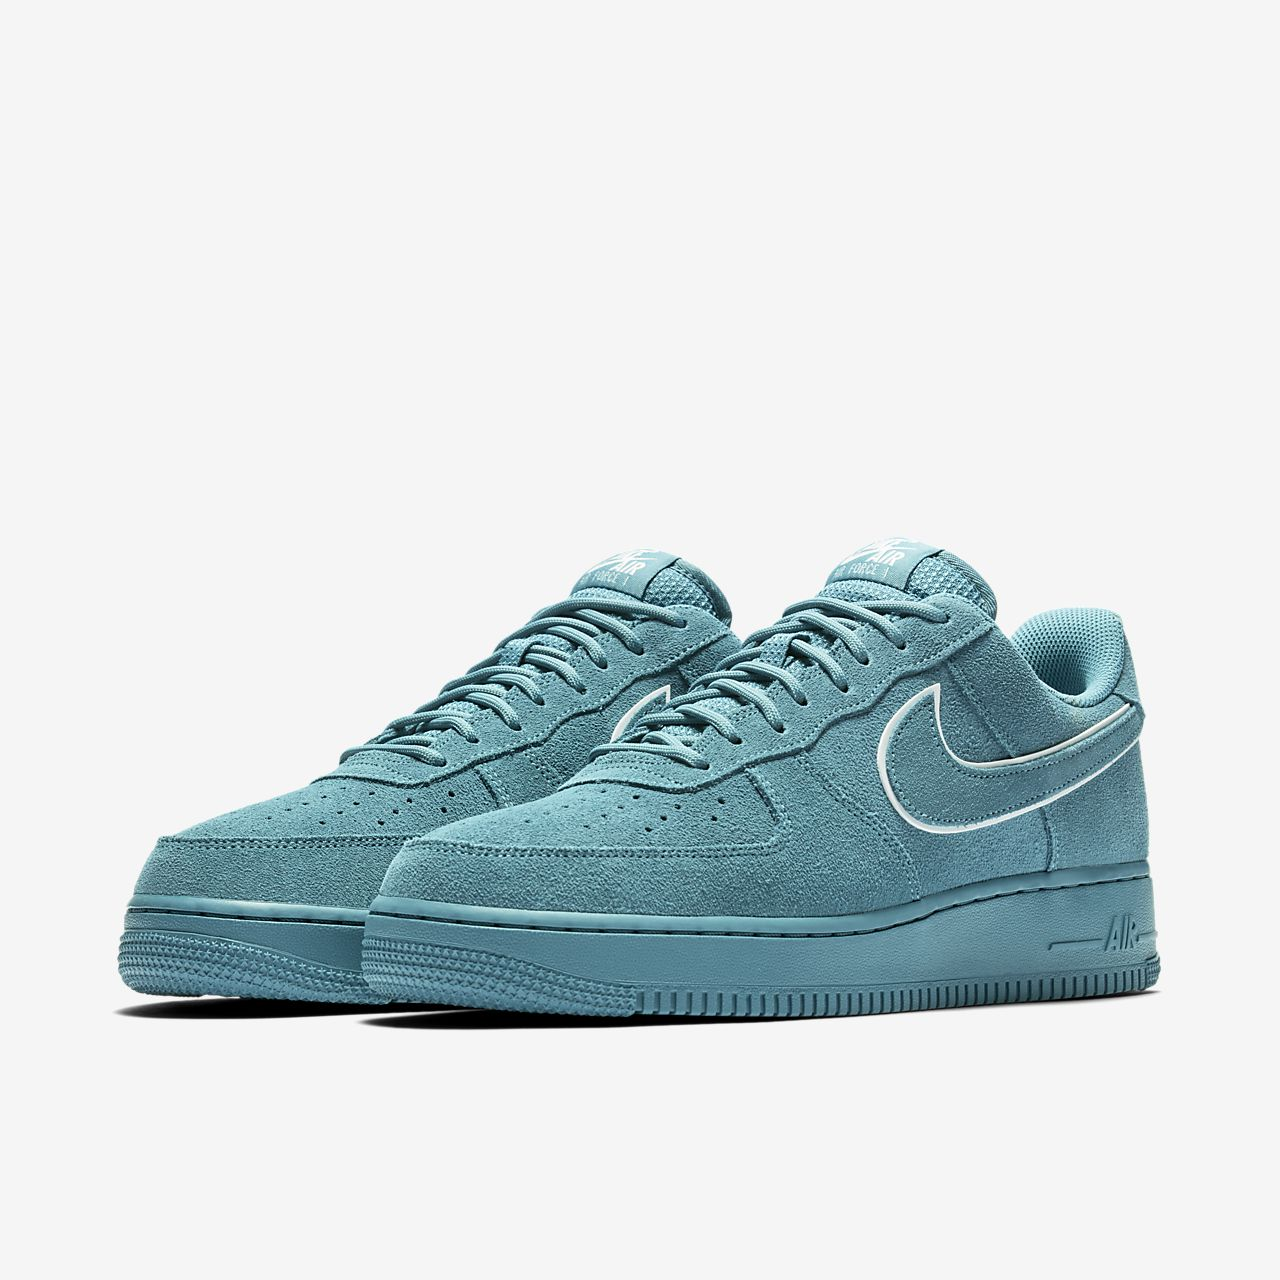 bcde1959e2 Buy nike air force 1 lv8 suede > up to 40% Discounts